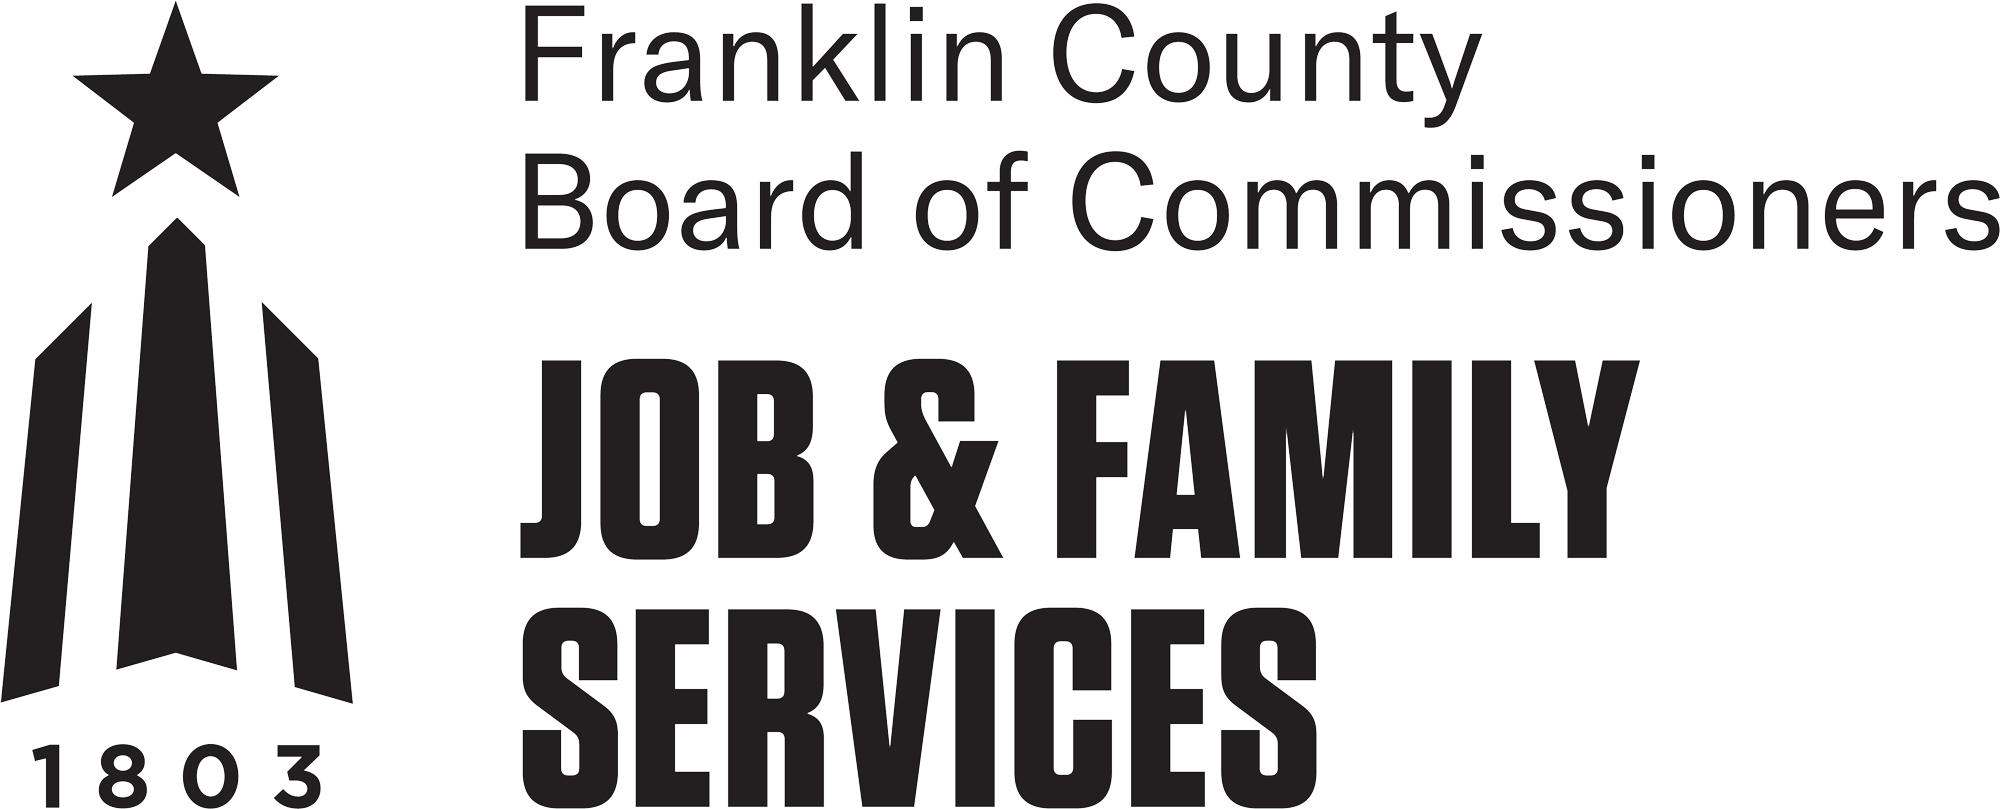 Franklin County Board of Commissioners Job & Family Services logo